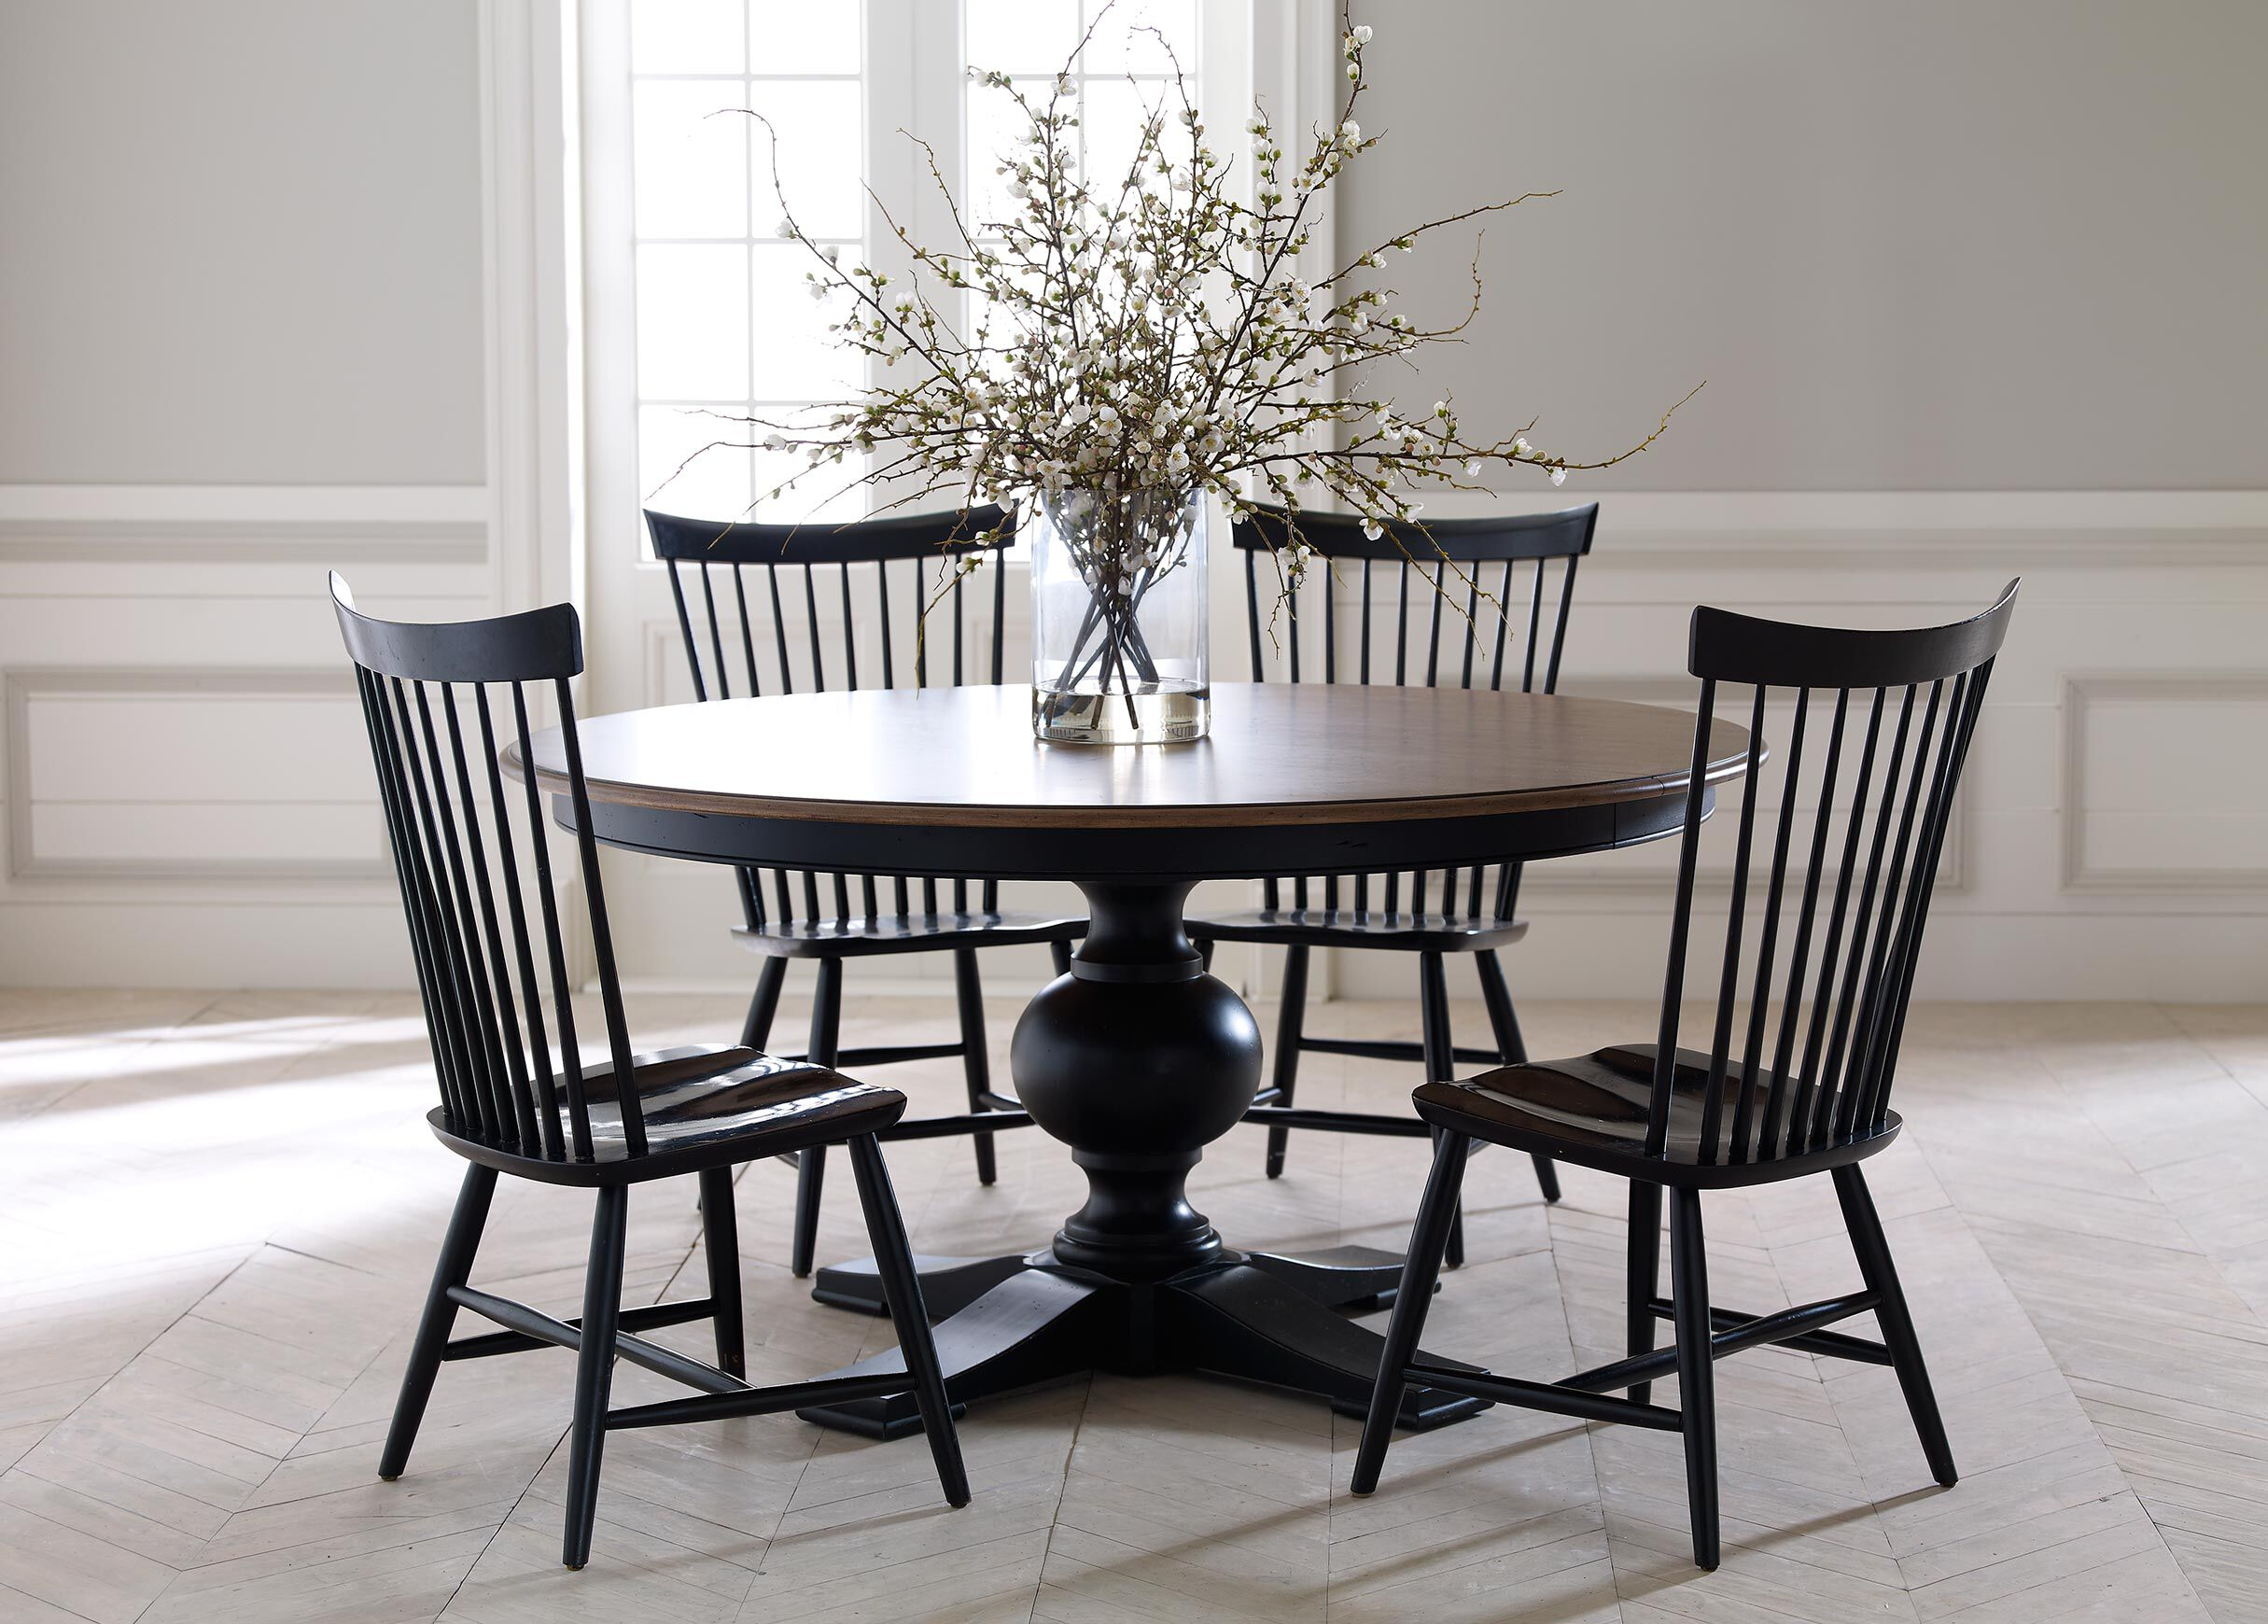 Country French Kitchen Tables Design500472 Ethan Allen Country French Dining Table And Chairs